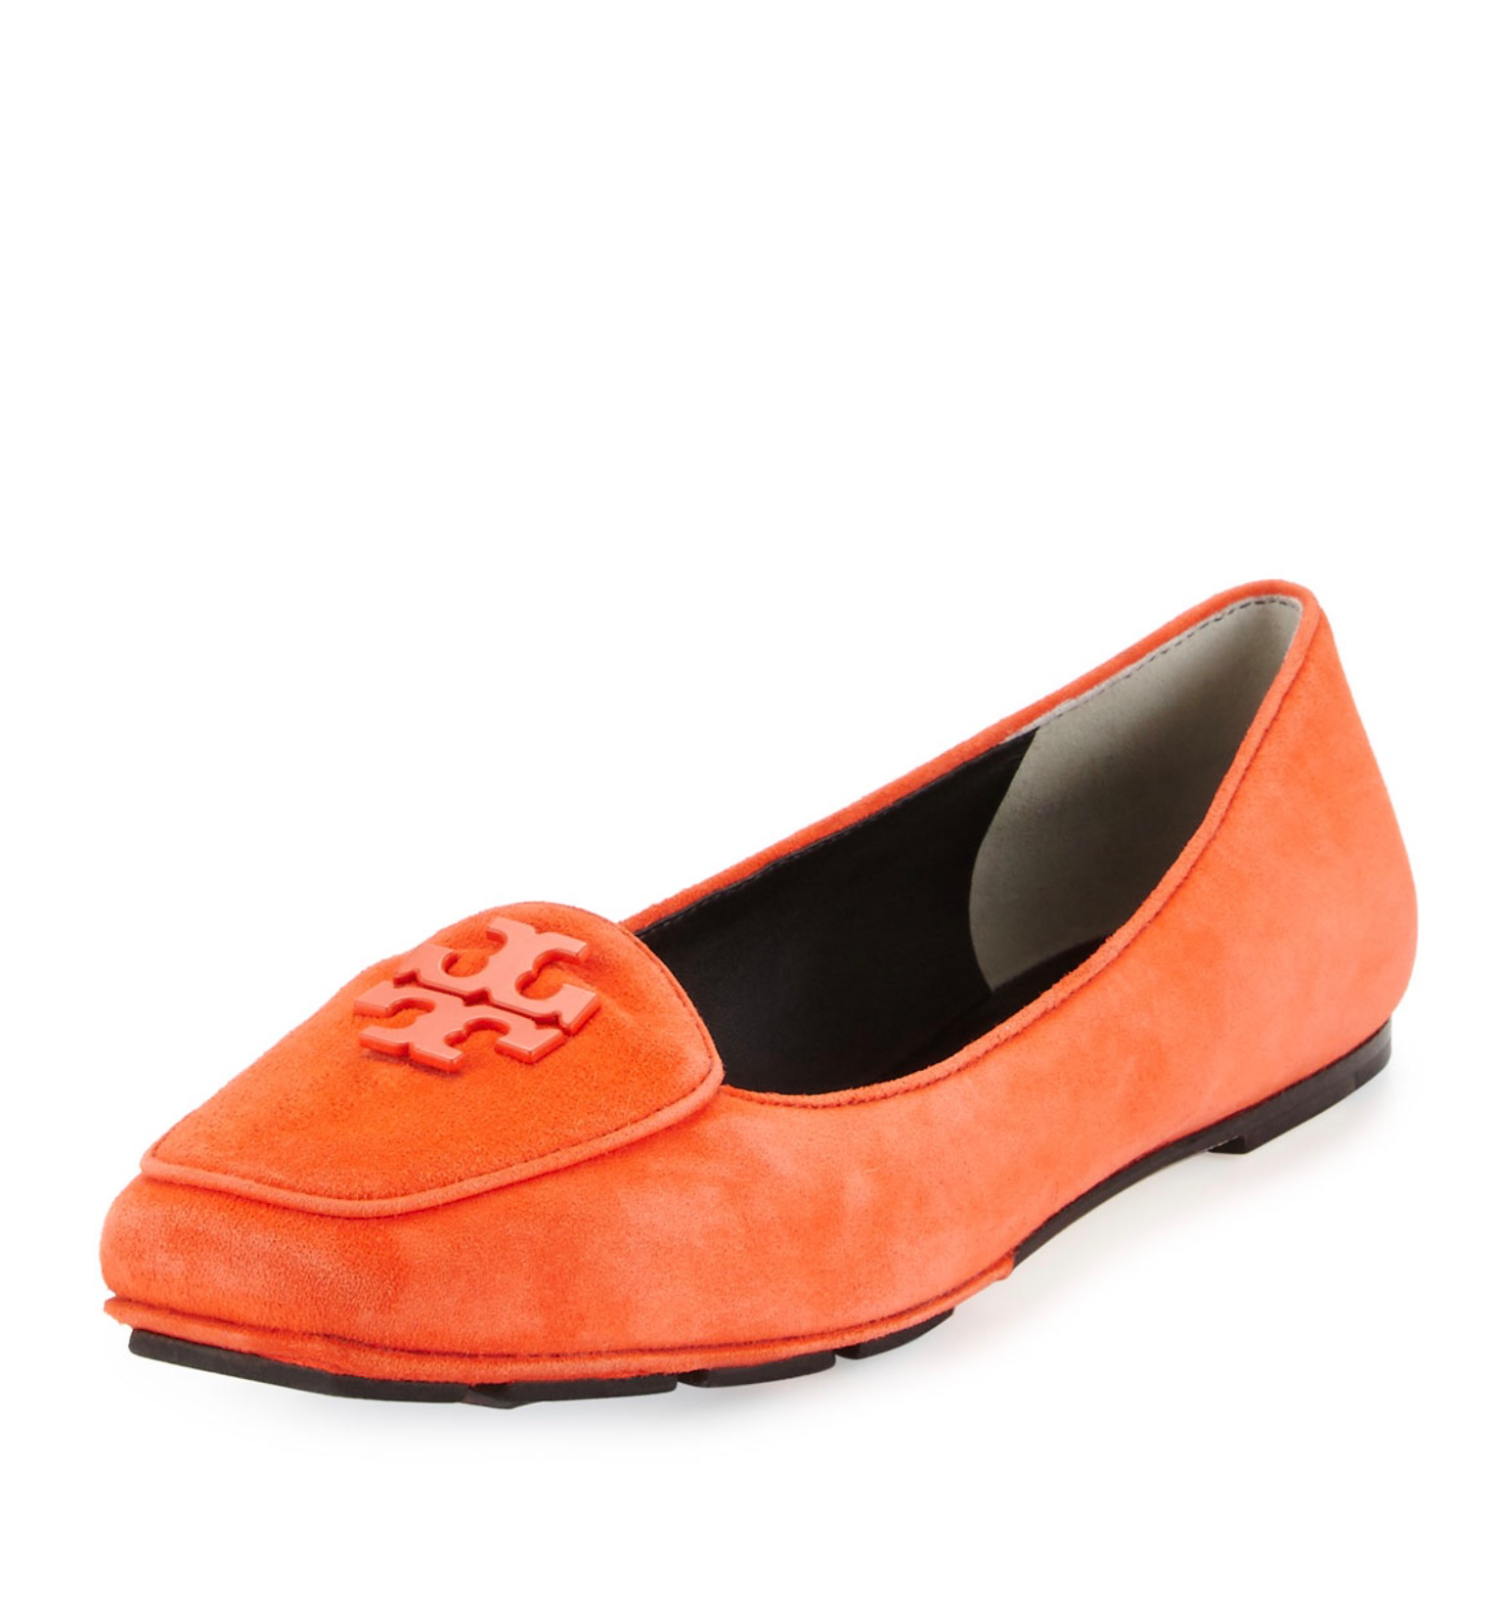 87daab810b88a Tory Burch Flat  1 customer review and 215 listings